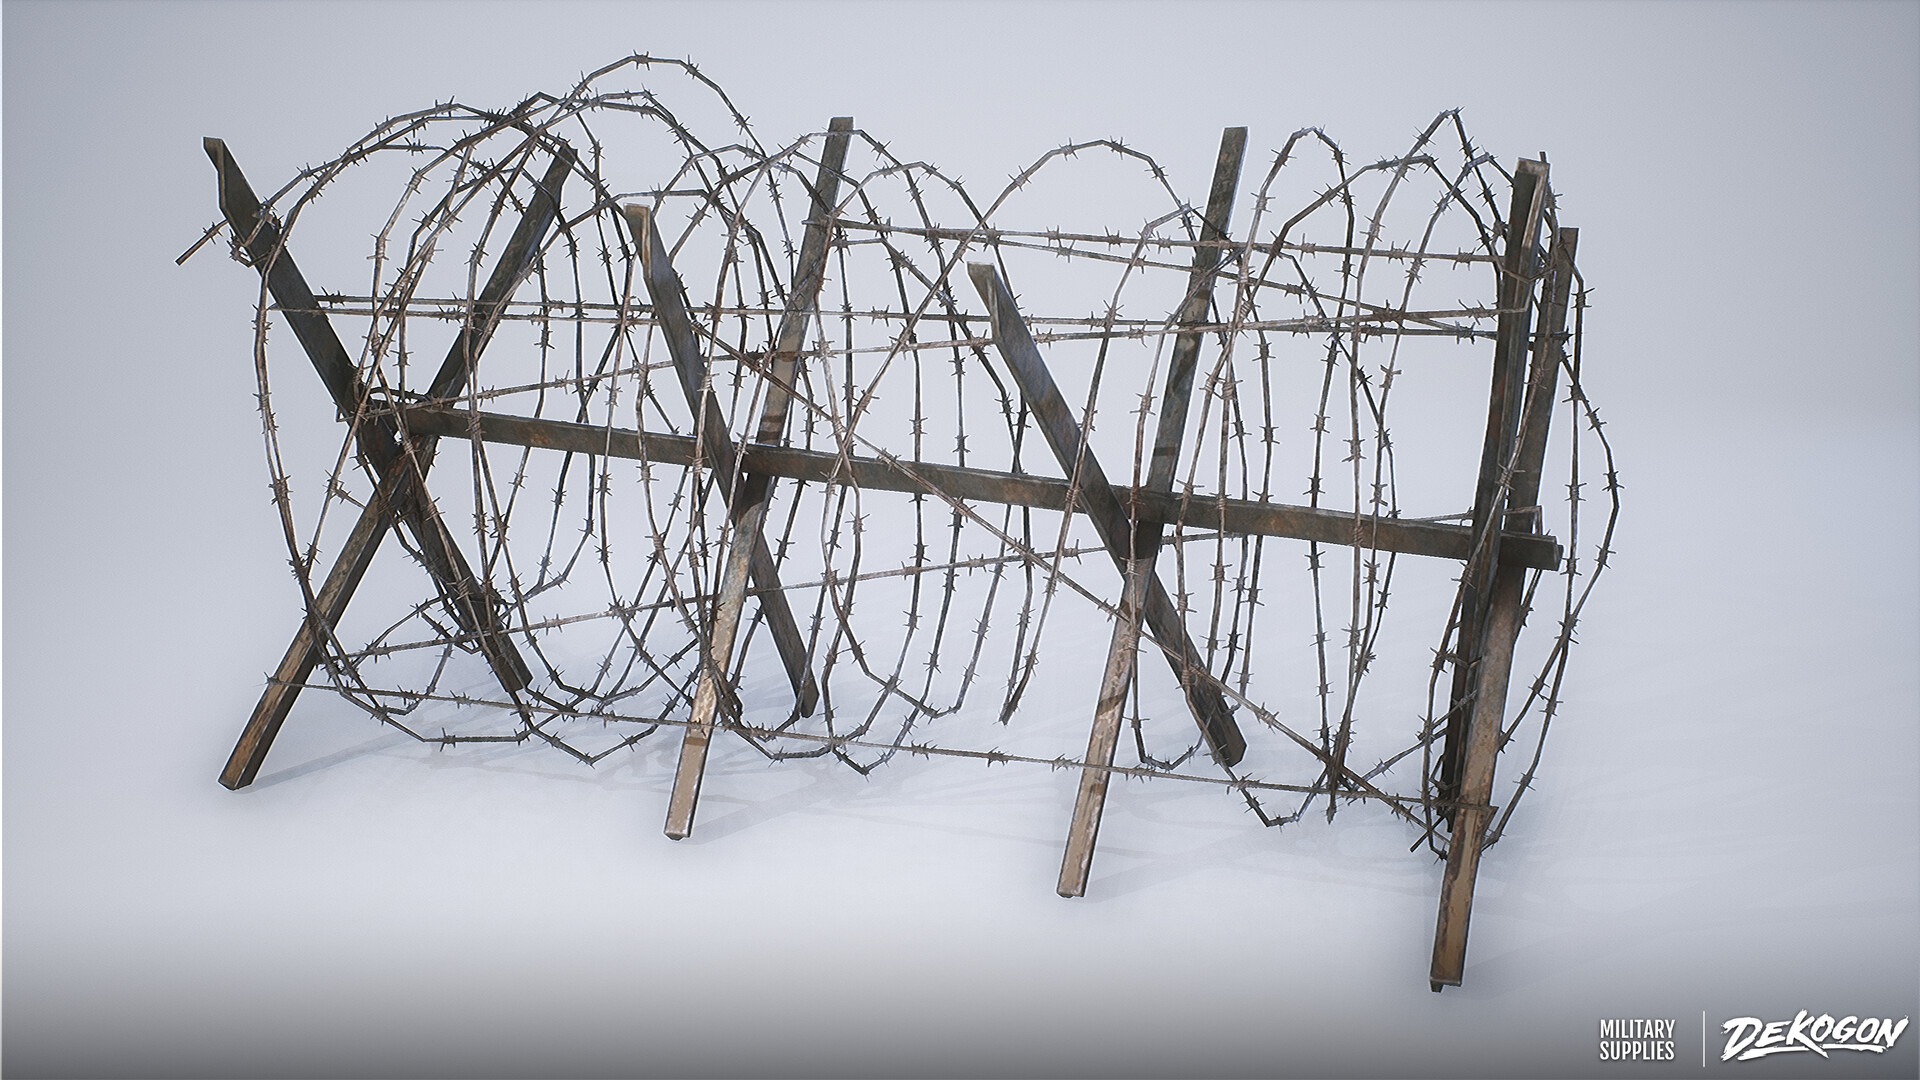 Wahyu nugraha barbed wire stop 02a 01